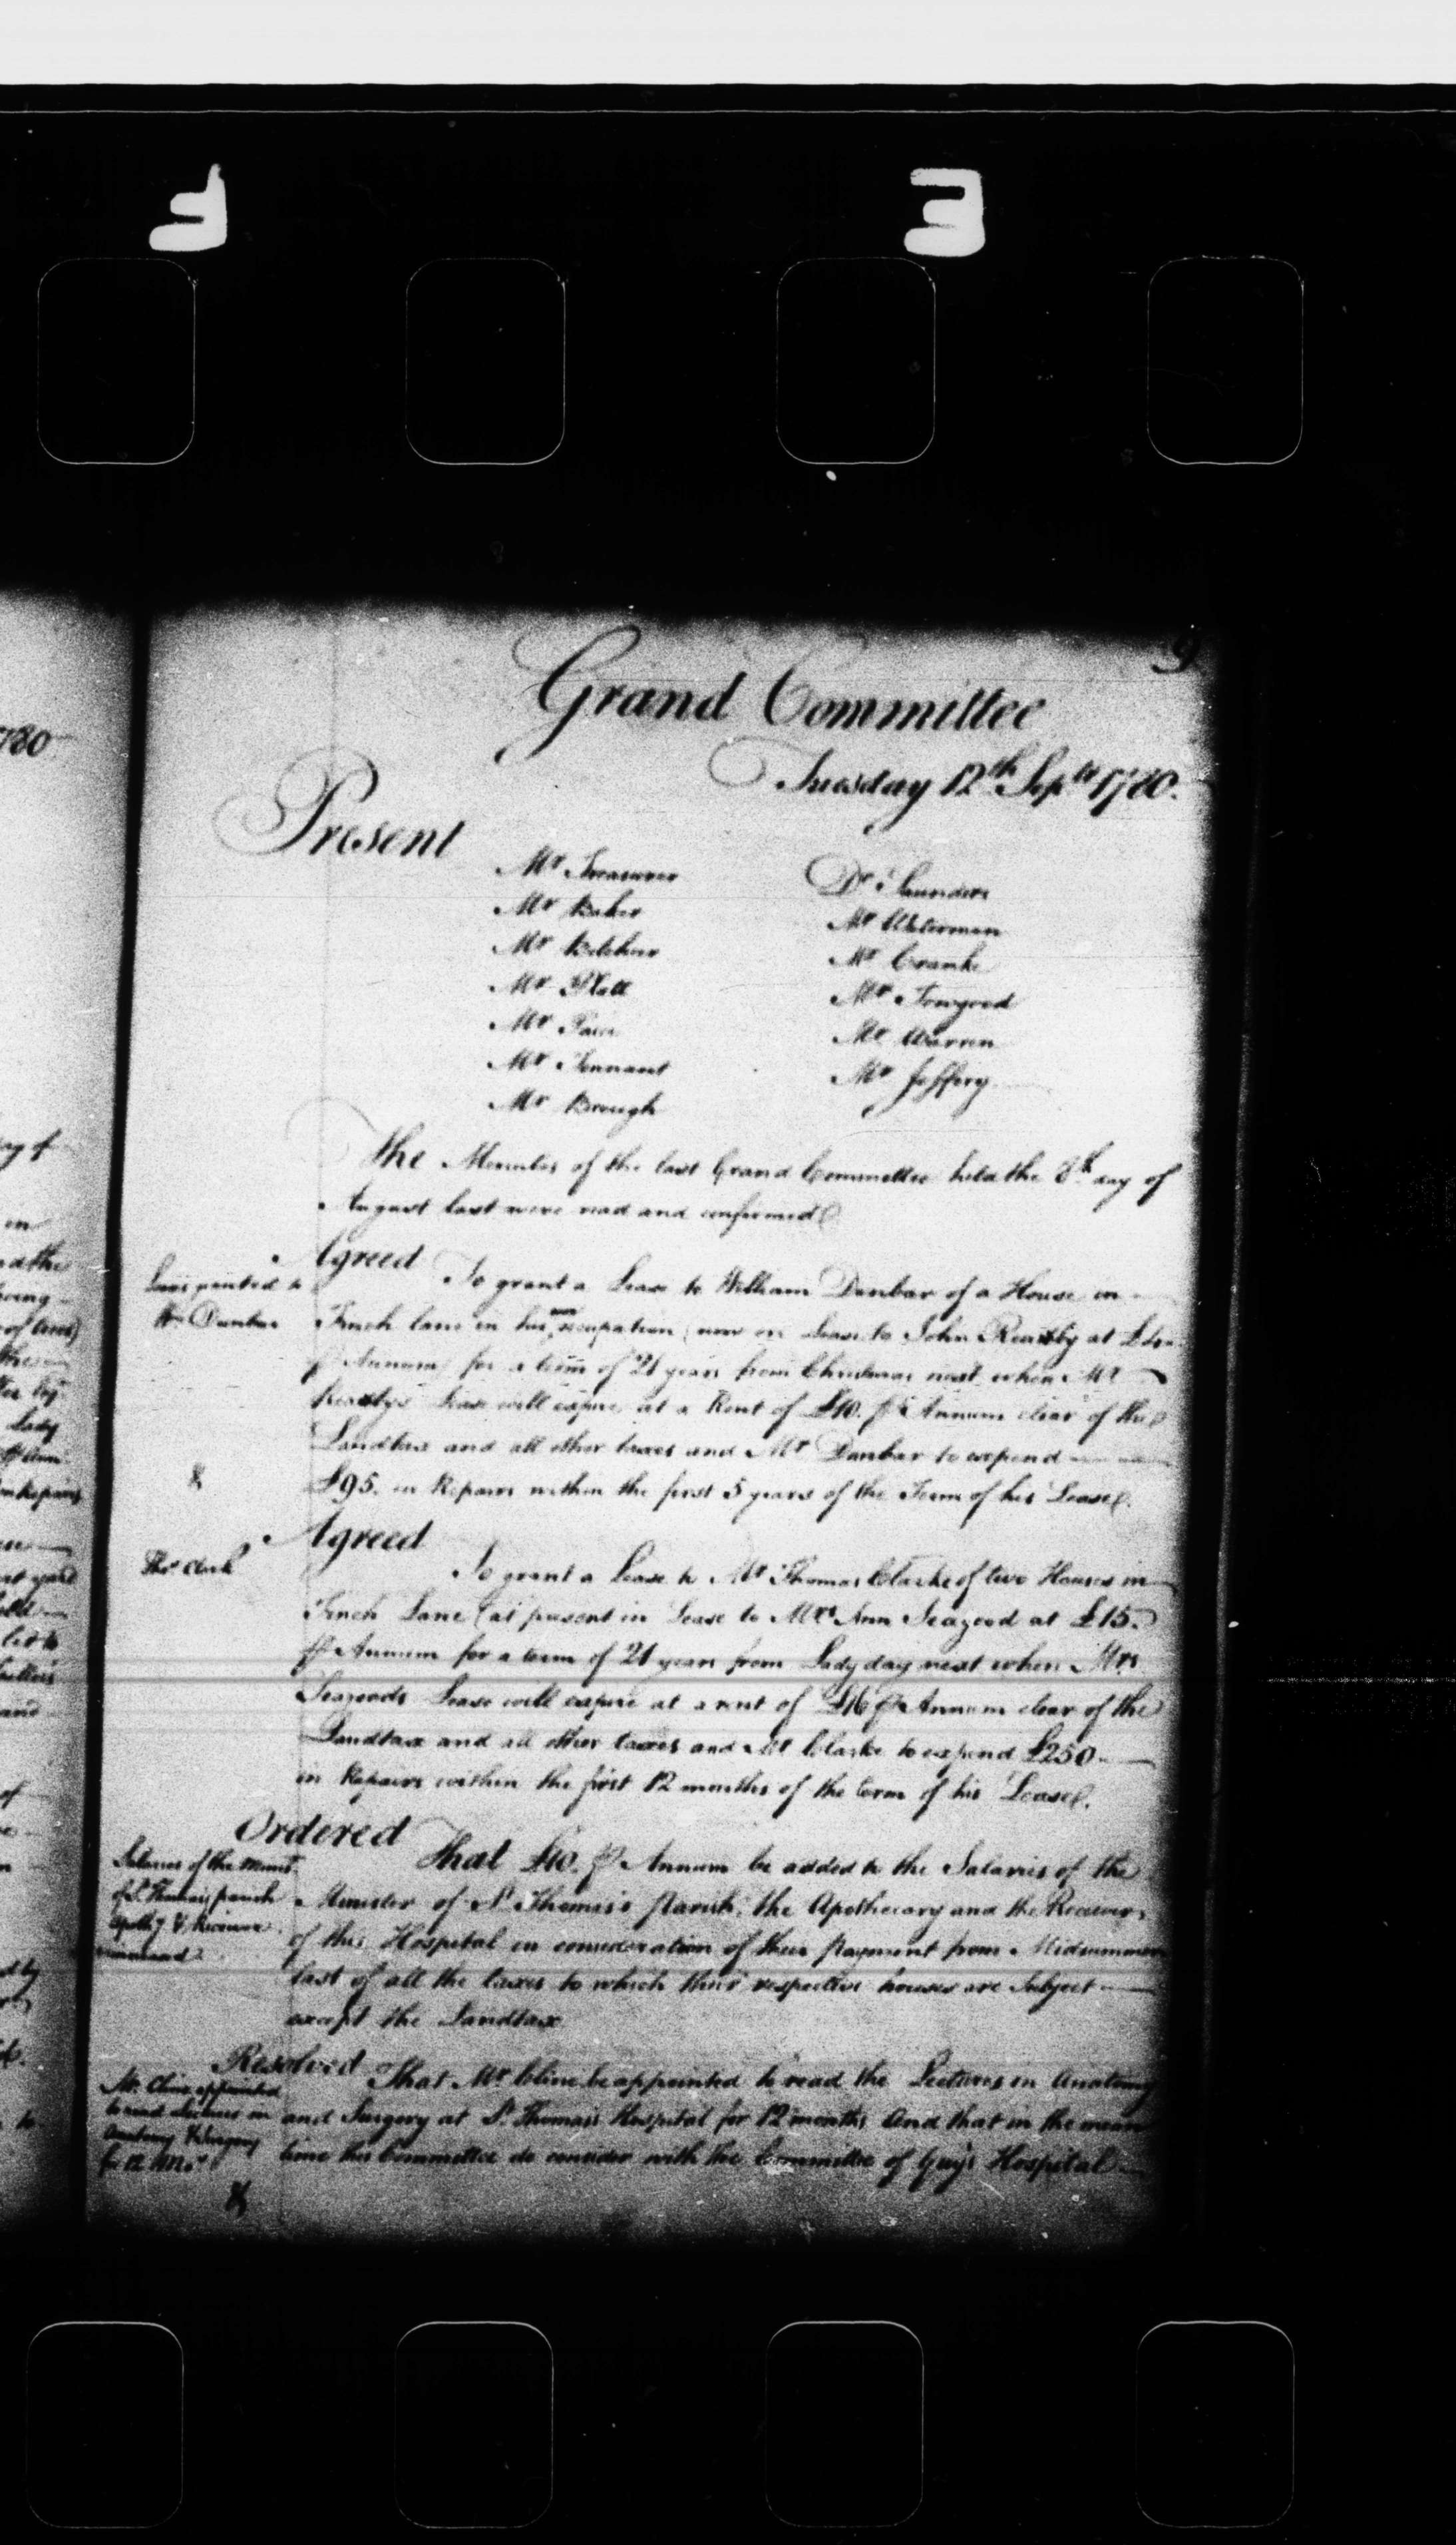 A page of minutes from the Grand Committee Minutes of St Thomas's Hospital, dated 12 September 1780.  The minutes relate primarily to business regarding the hospital's property holdings.